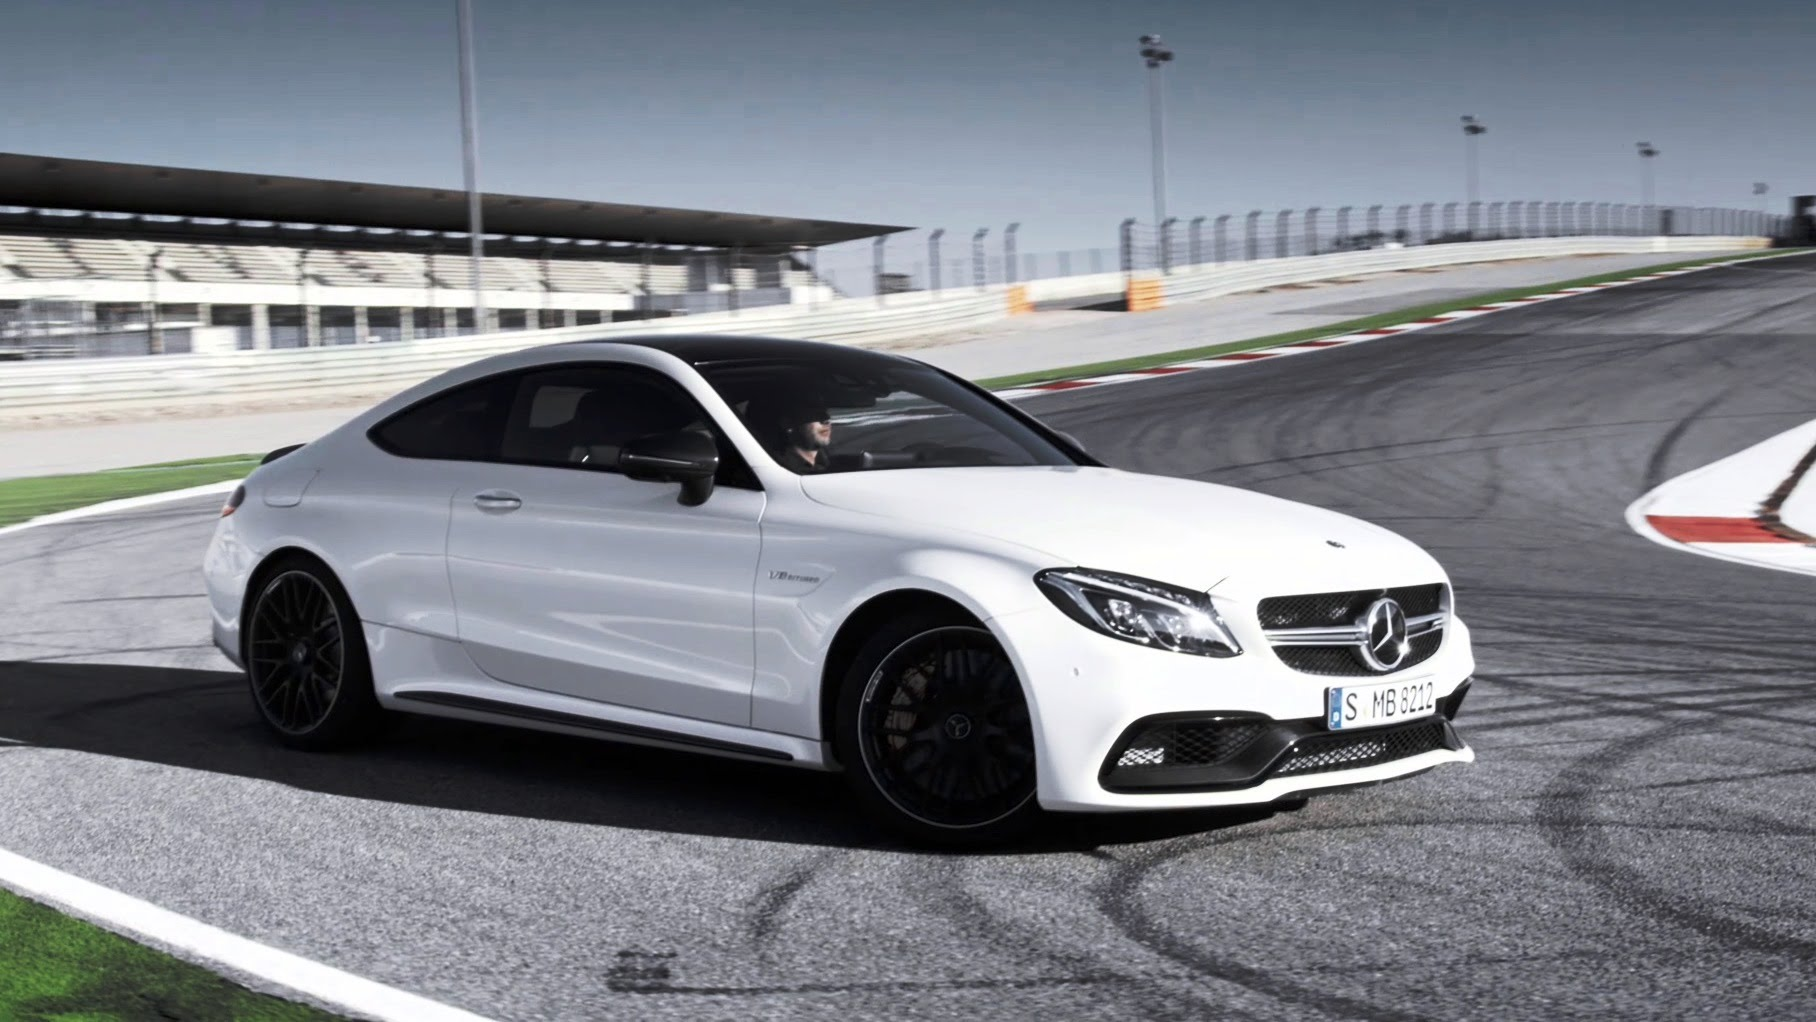 Video 2016 mercedes amg c63 coupe in action gtspirit for Mercedes benz c63 amg coupe 2016